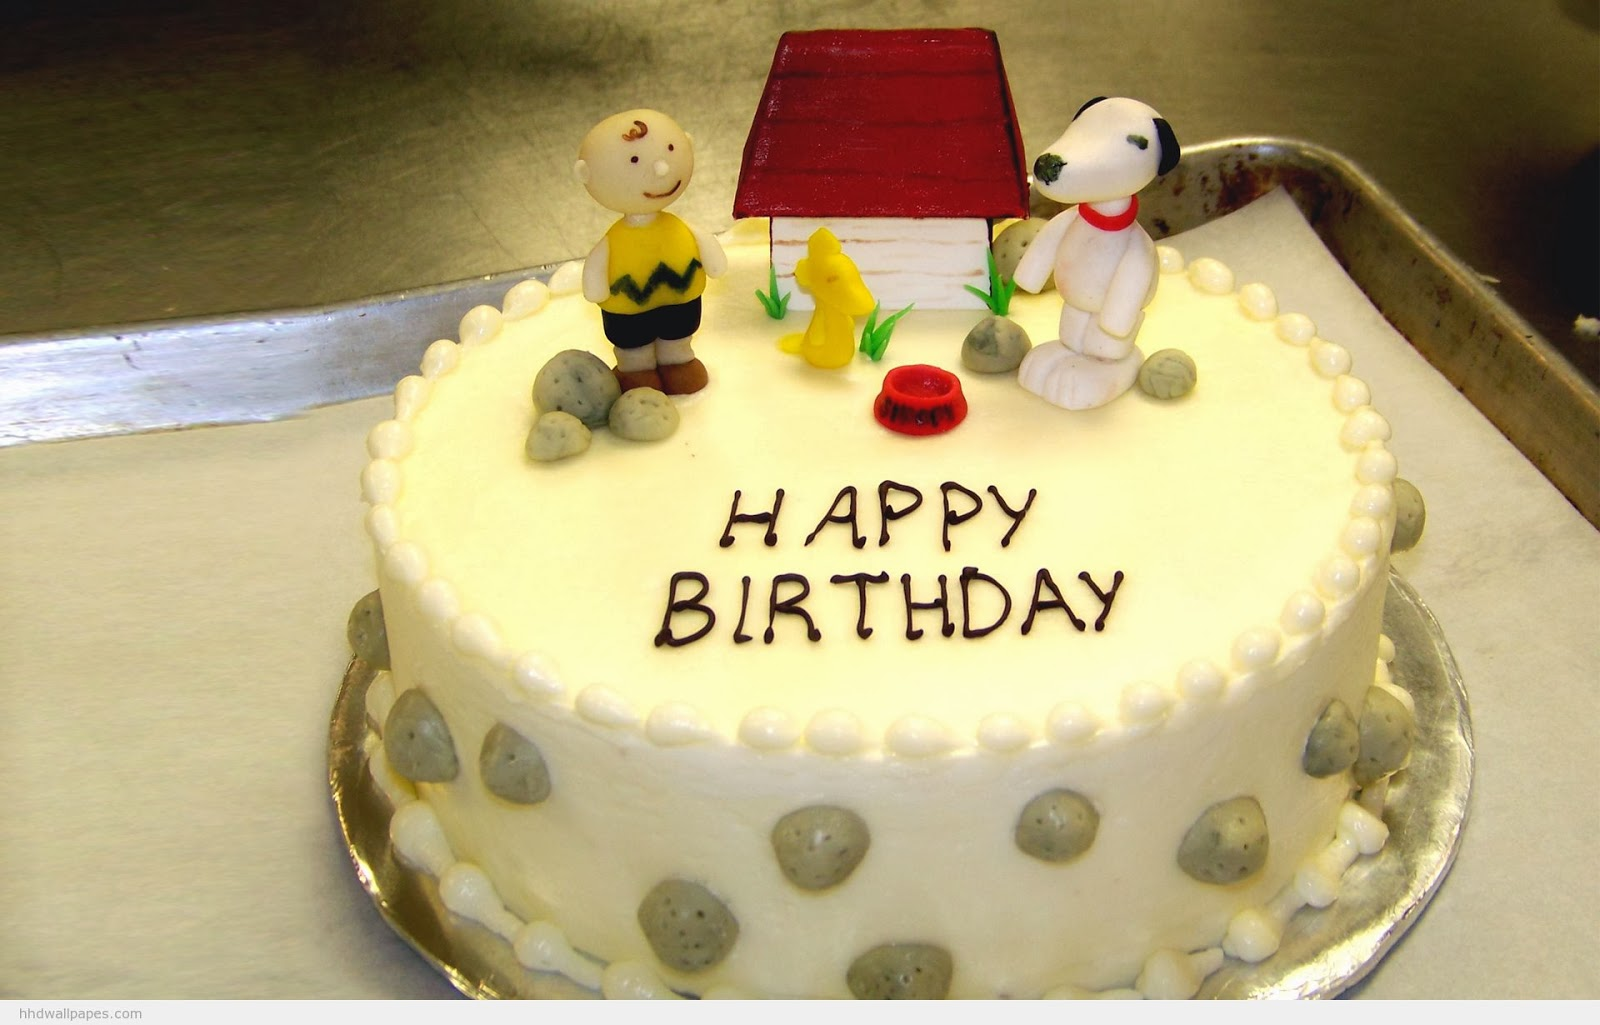 Cake Images In Birthday : Lovable Images: Happy Birthday Greetings free download ...